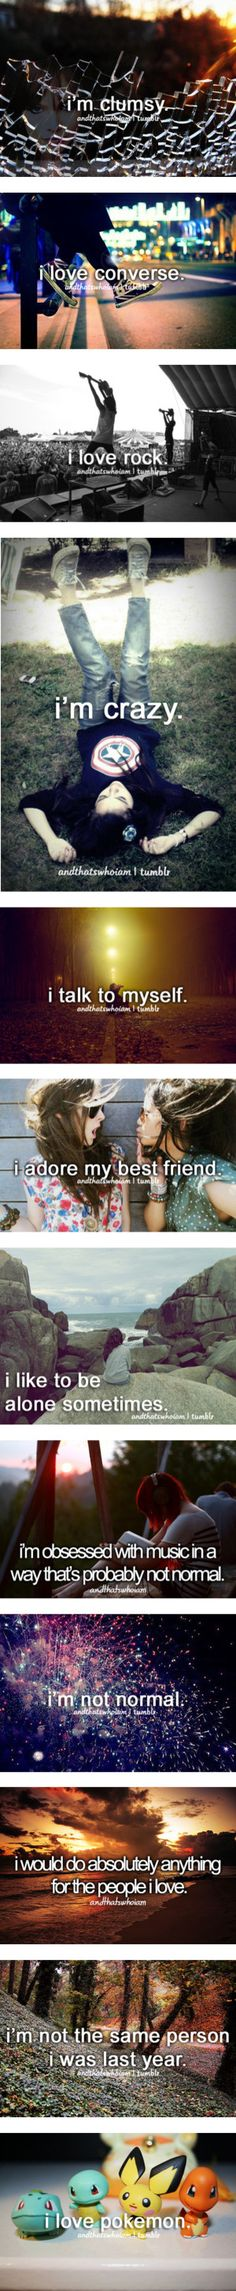 """and thats just who i am"" by theplacewherethesidewalkends ❤ liked on Polyvore"